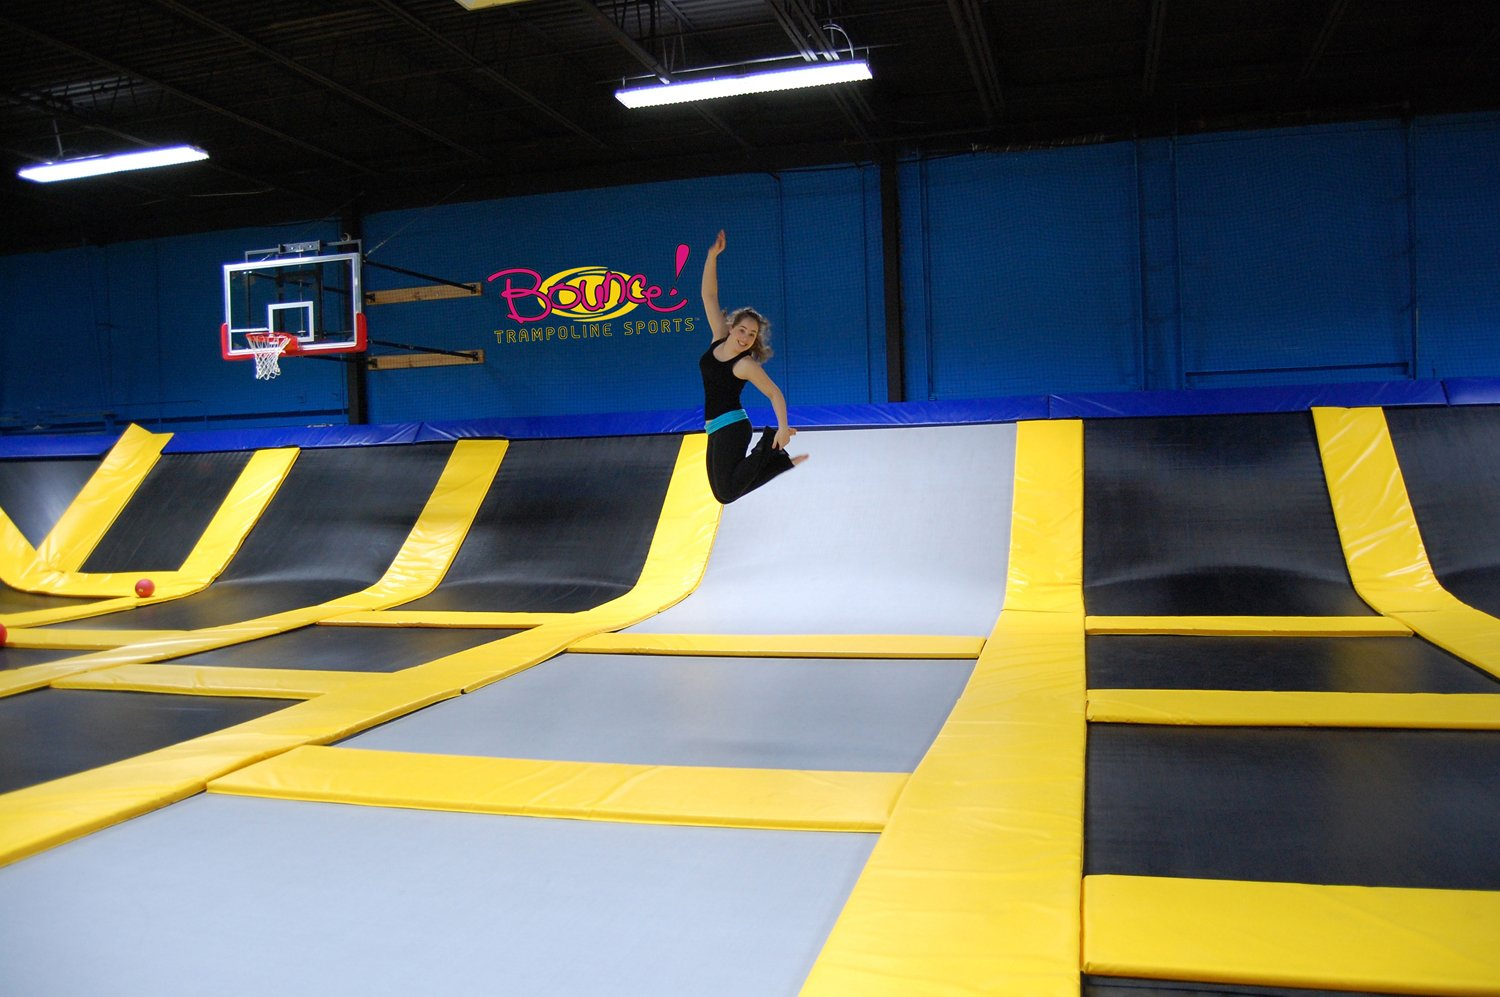 bounce trampoline sports opens in valley cottage